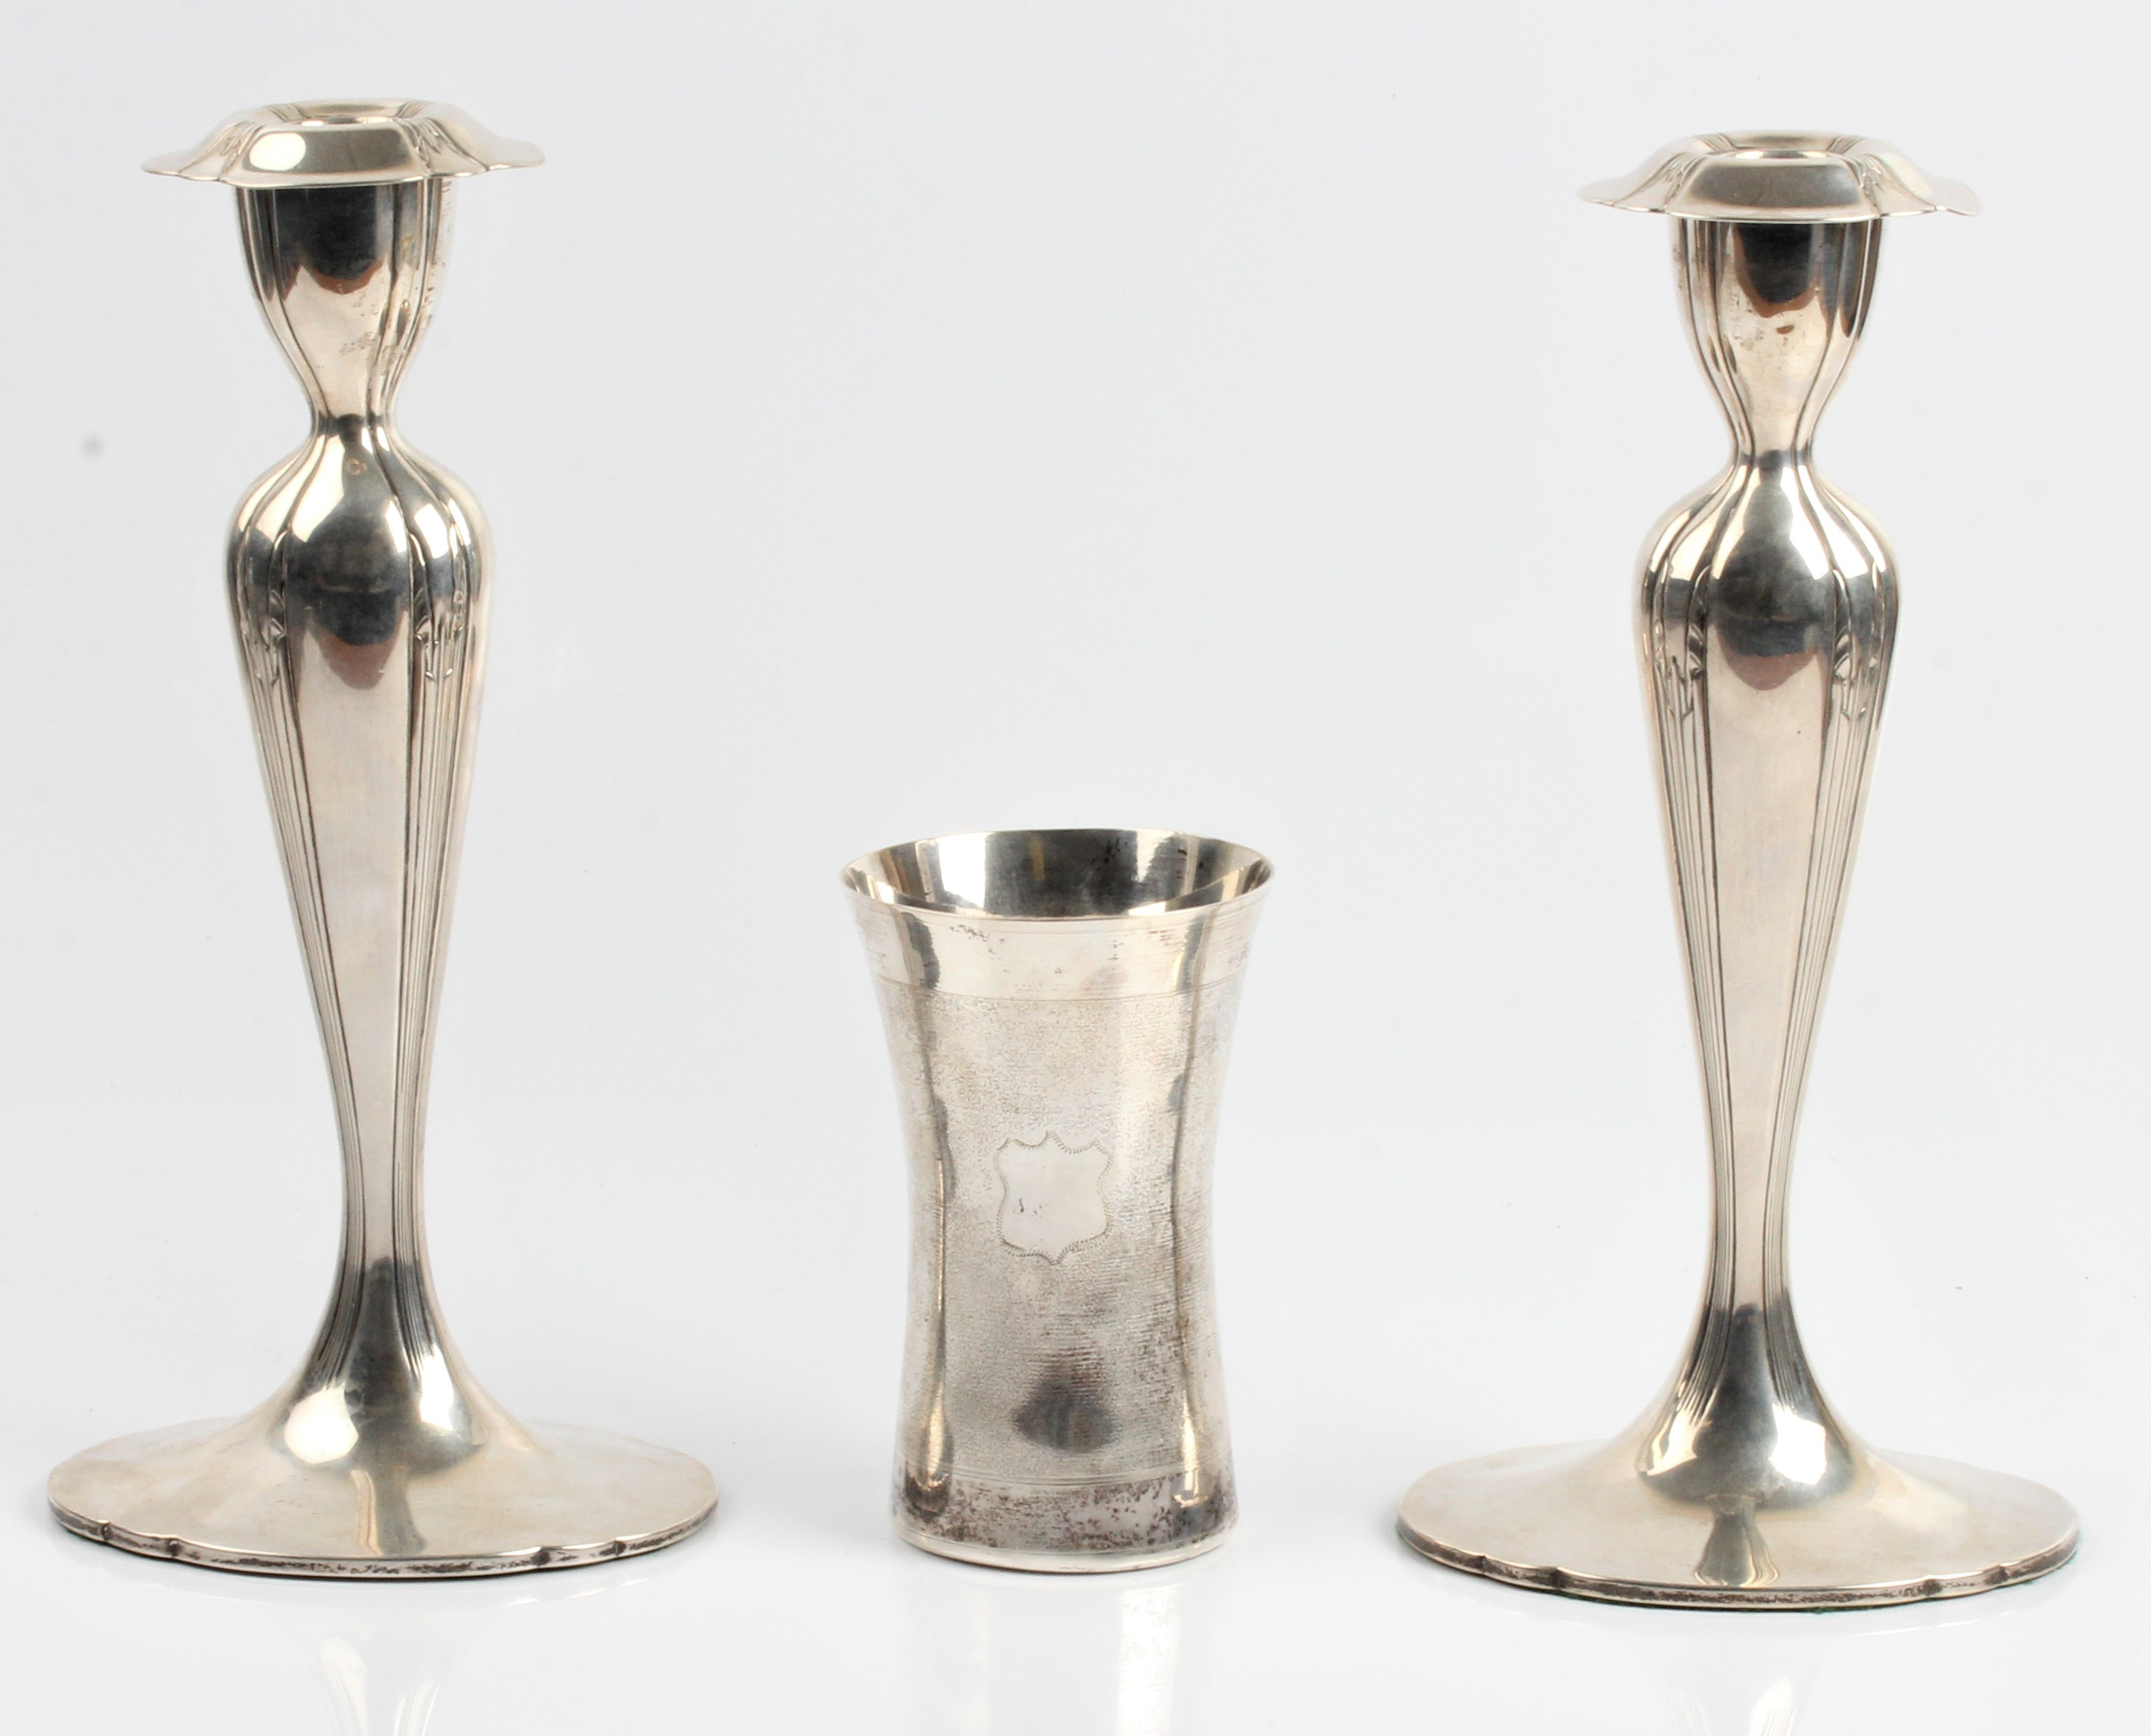 A white metal engraved beaker, approx. height 12cm, approx. weight 184g, together with a pair of